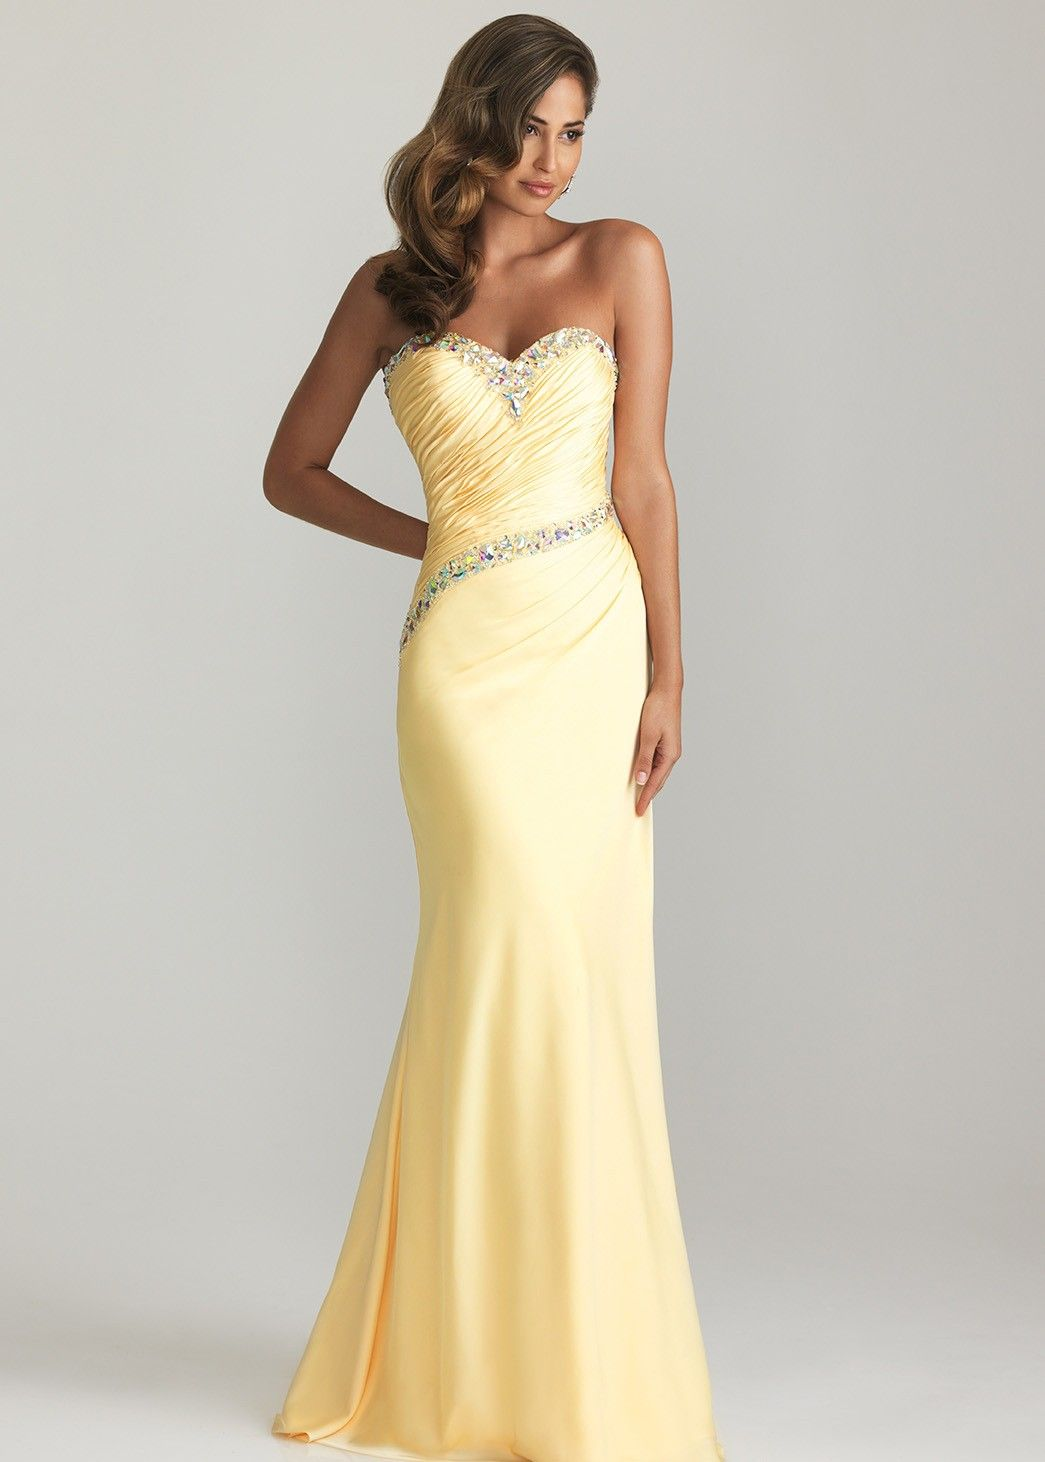 Beautifully Beaded Yellow Strapless Prom Dress - Evening Gown ...